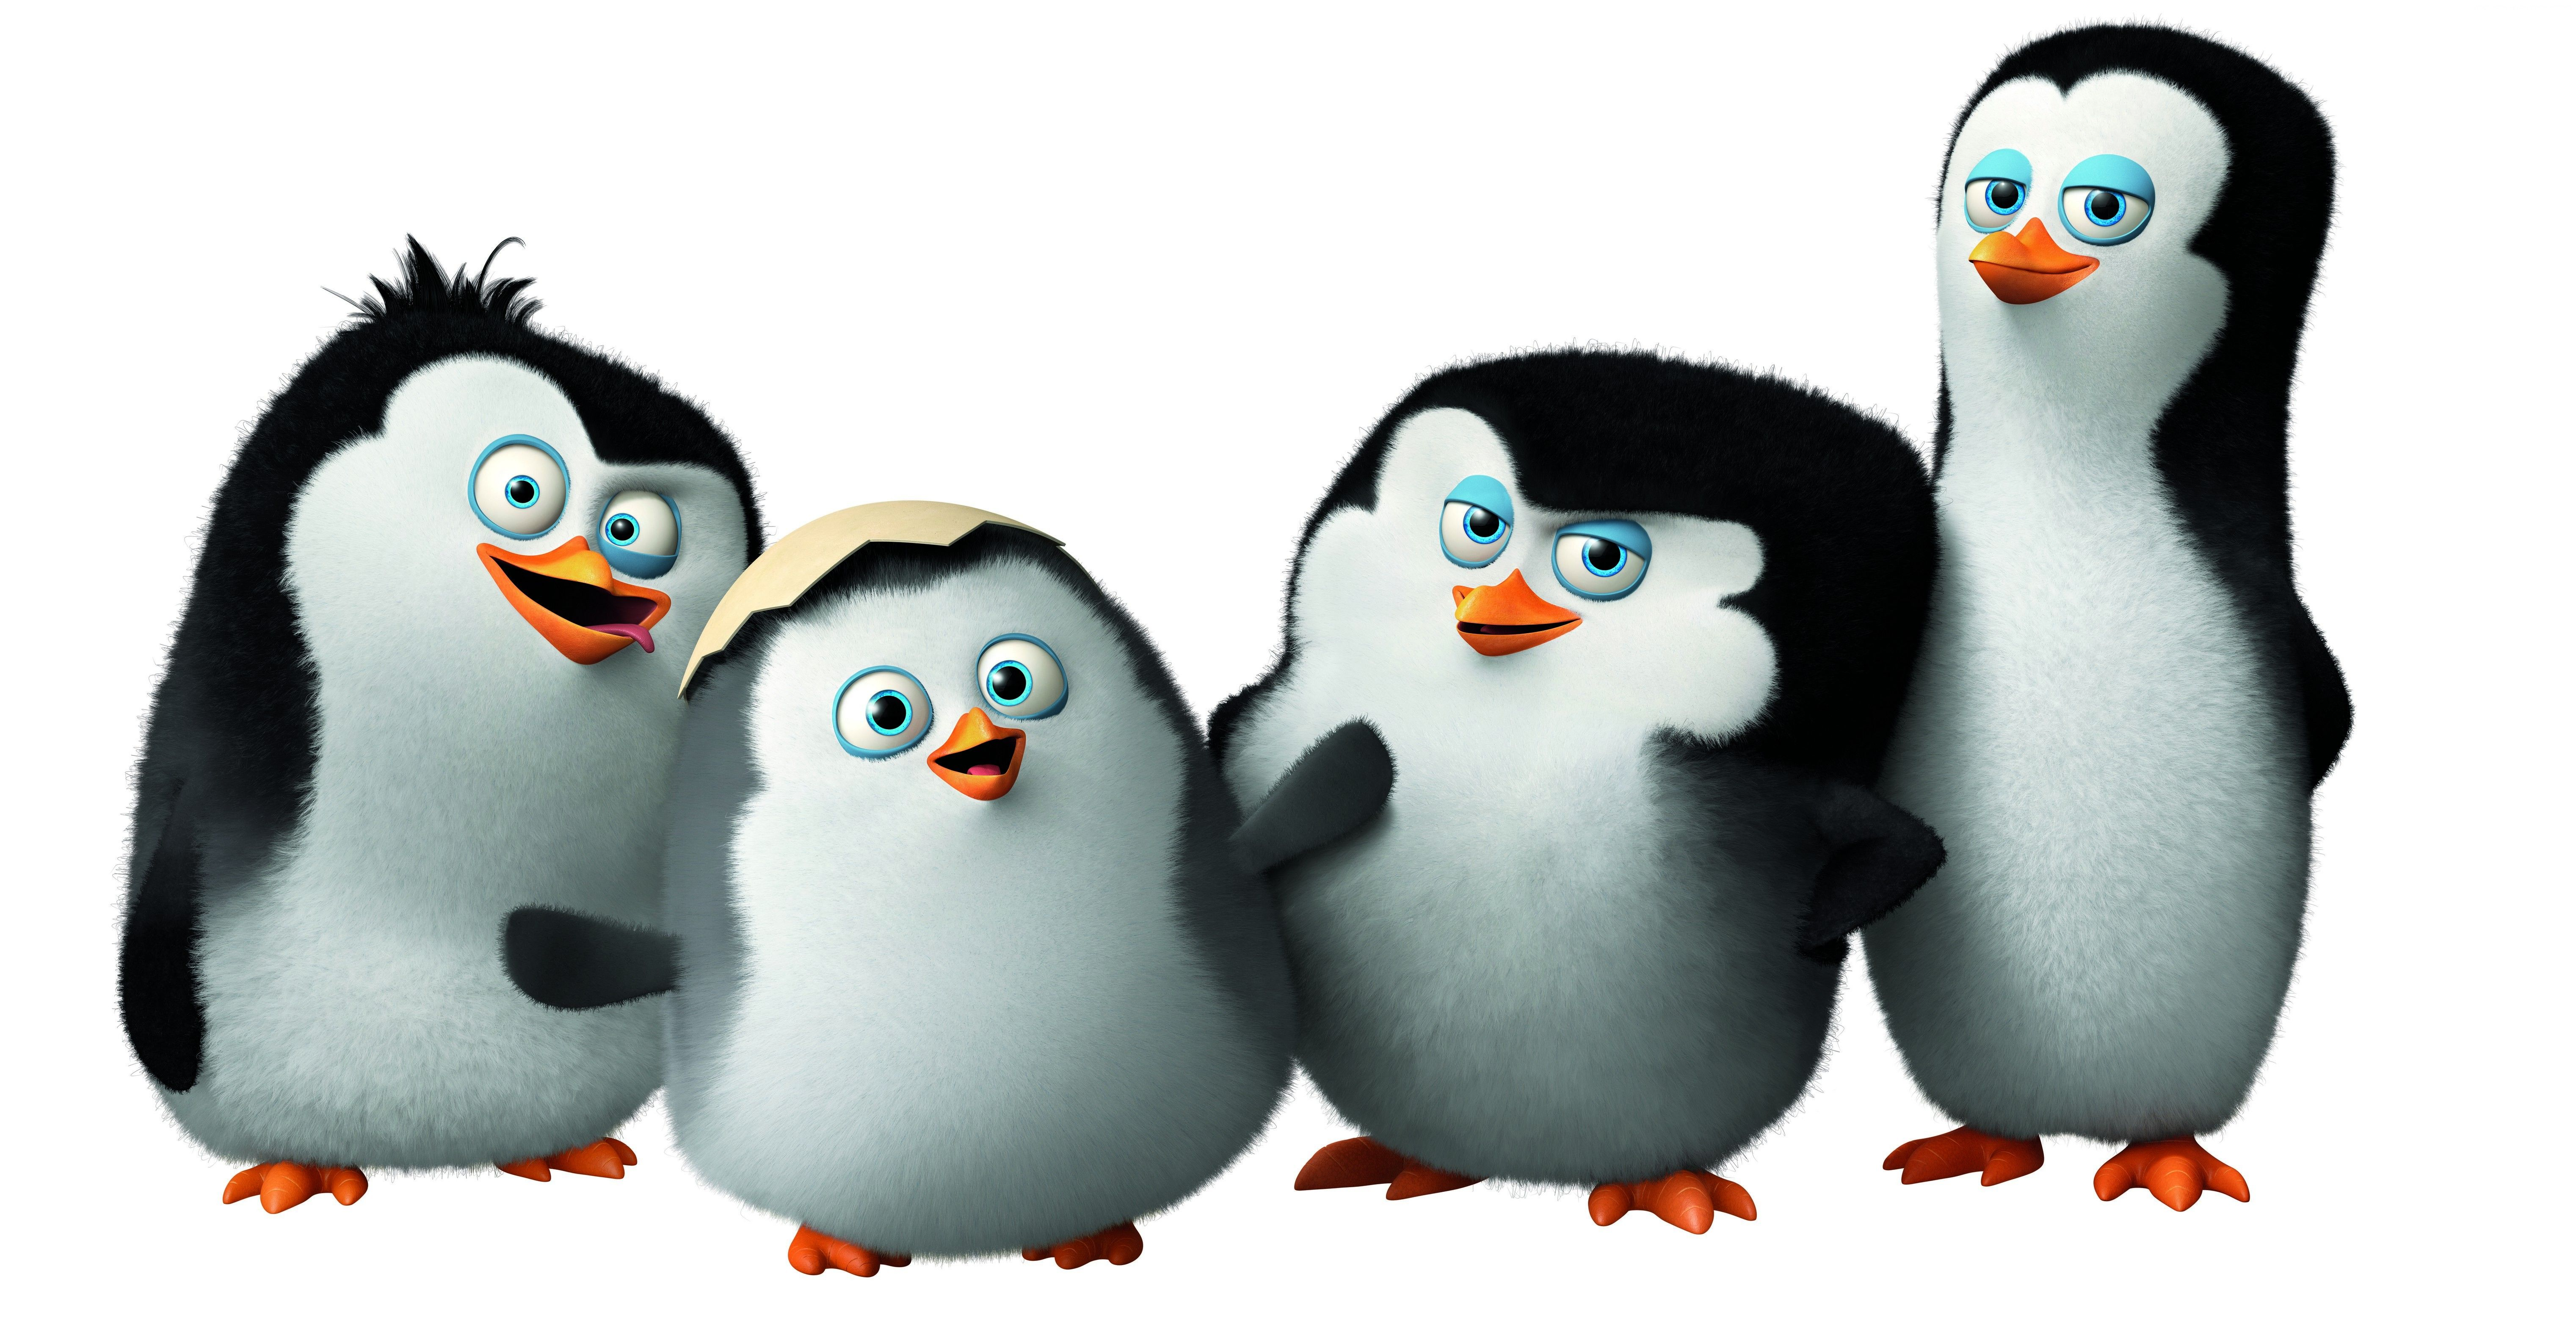 Awesome Cute Penguins Cartoon Madagascar 6k Wallpaper